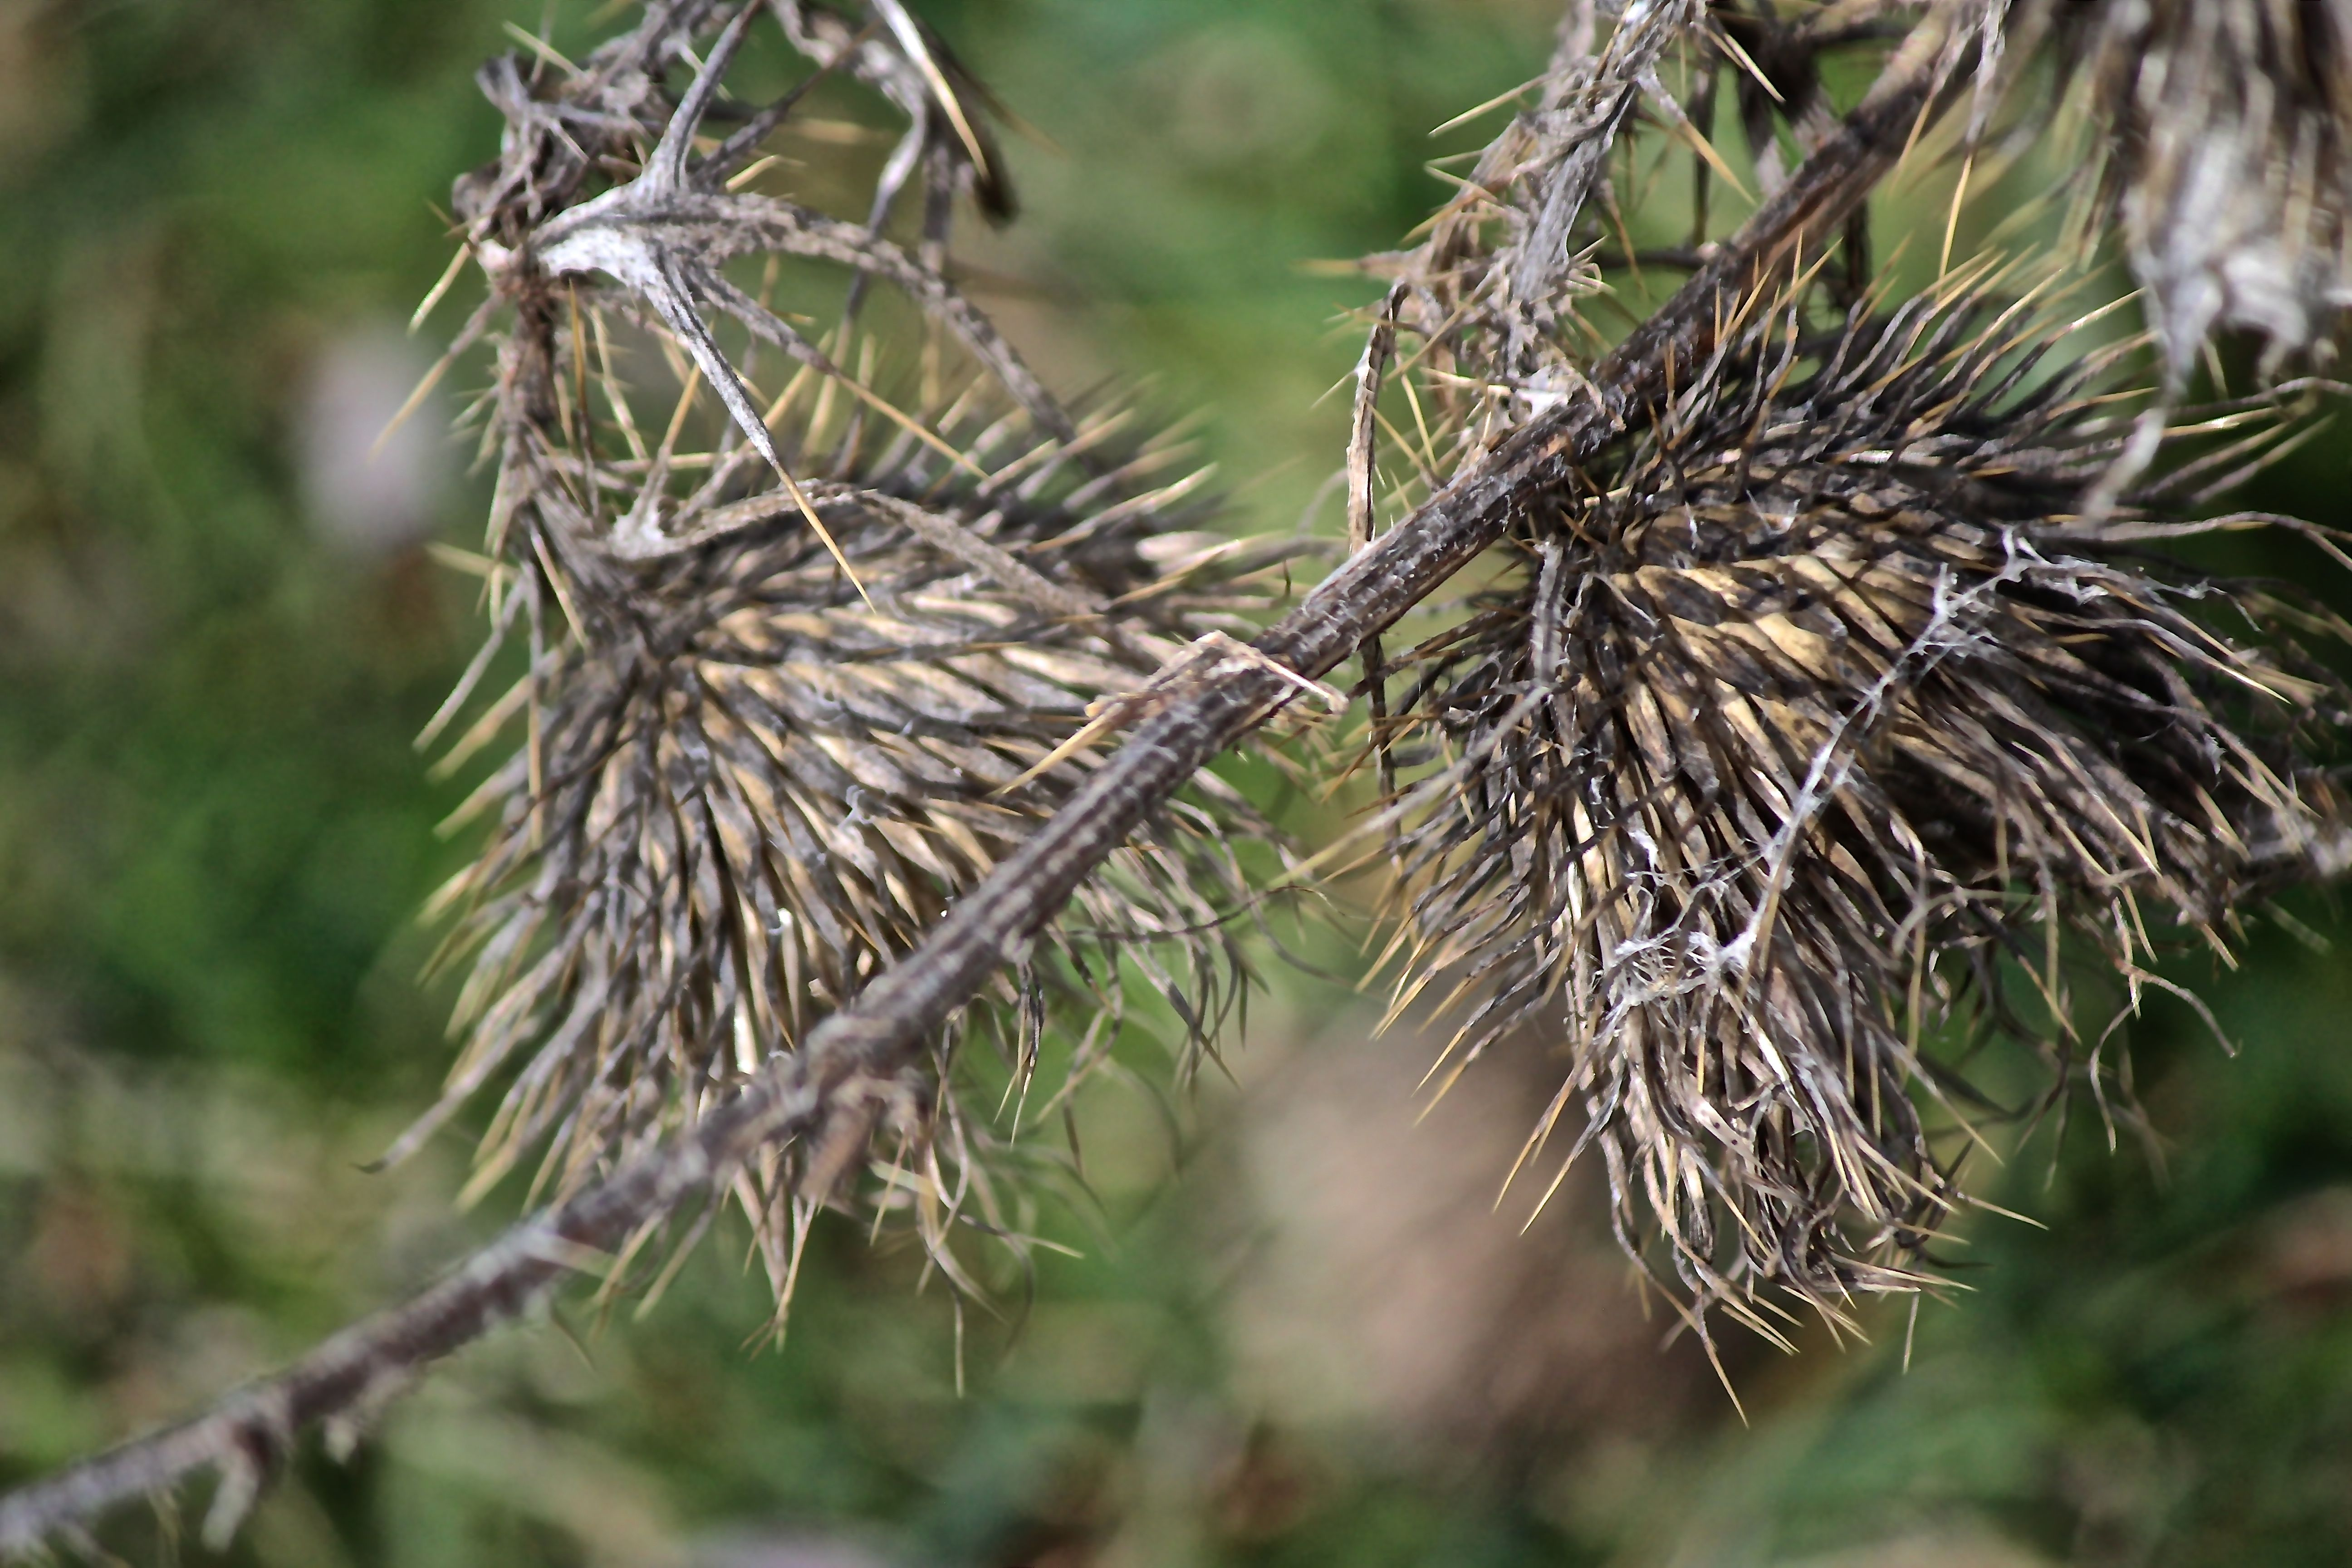 c-thistle weed